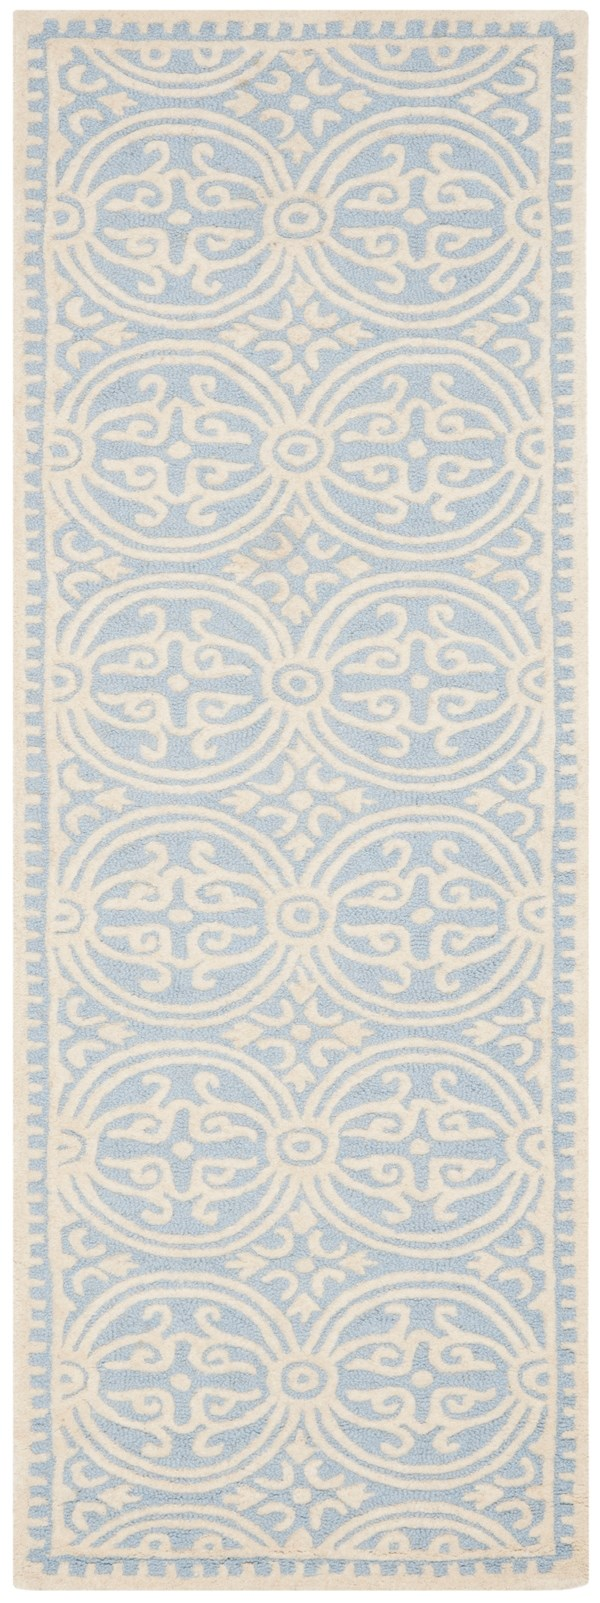 Light Blue, Ivory (A) Moroccan Area Rug